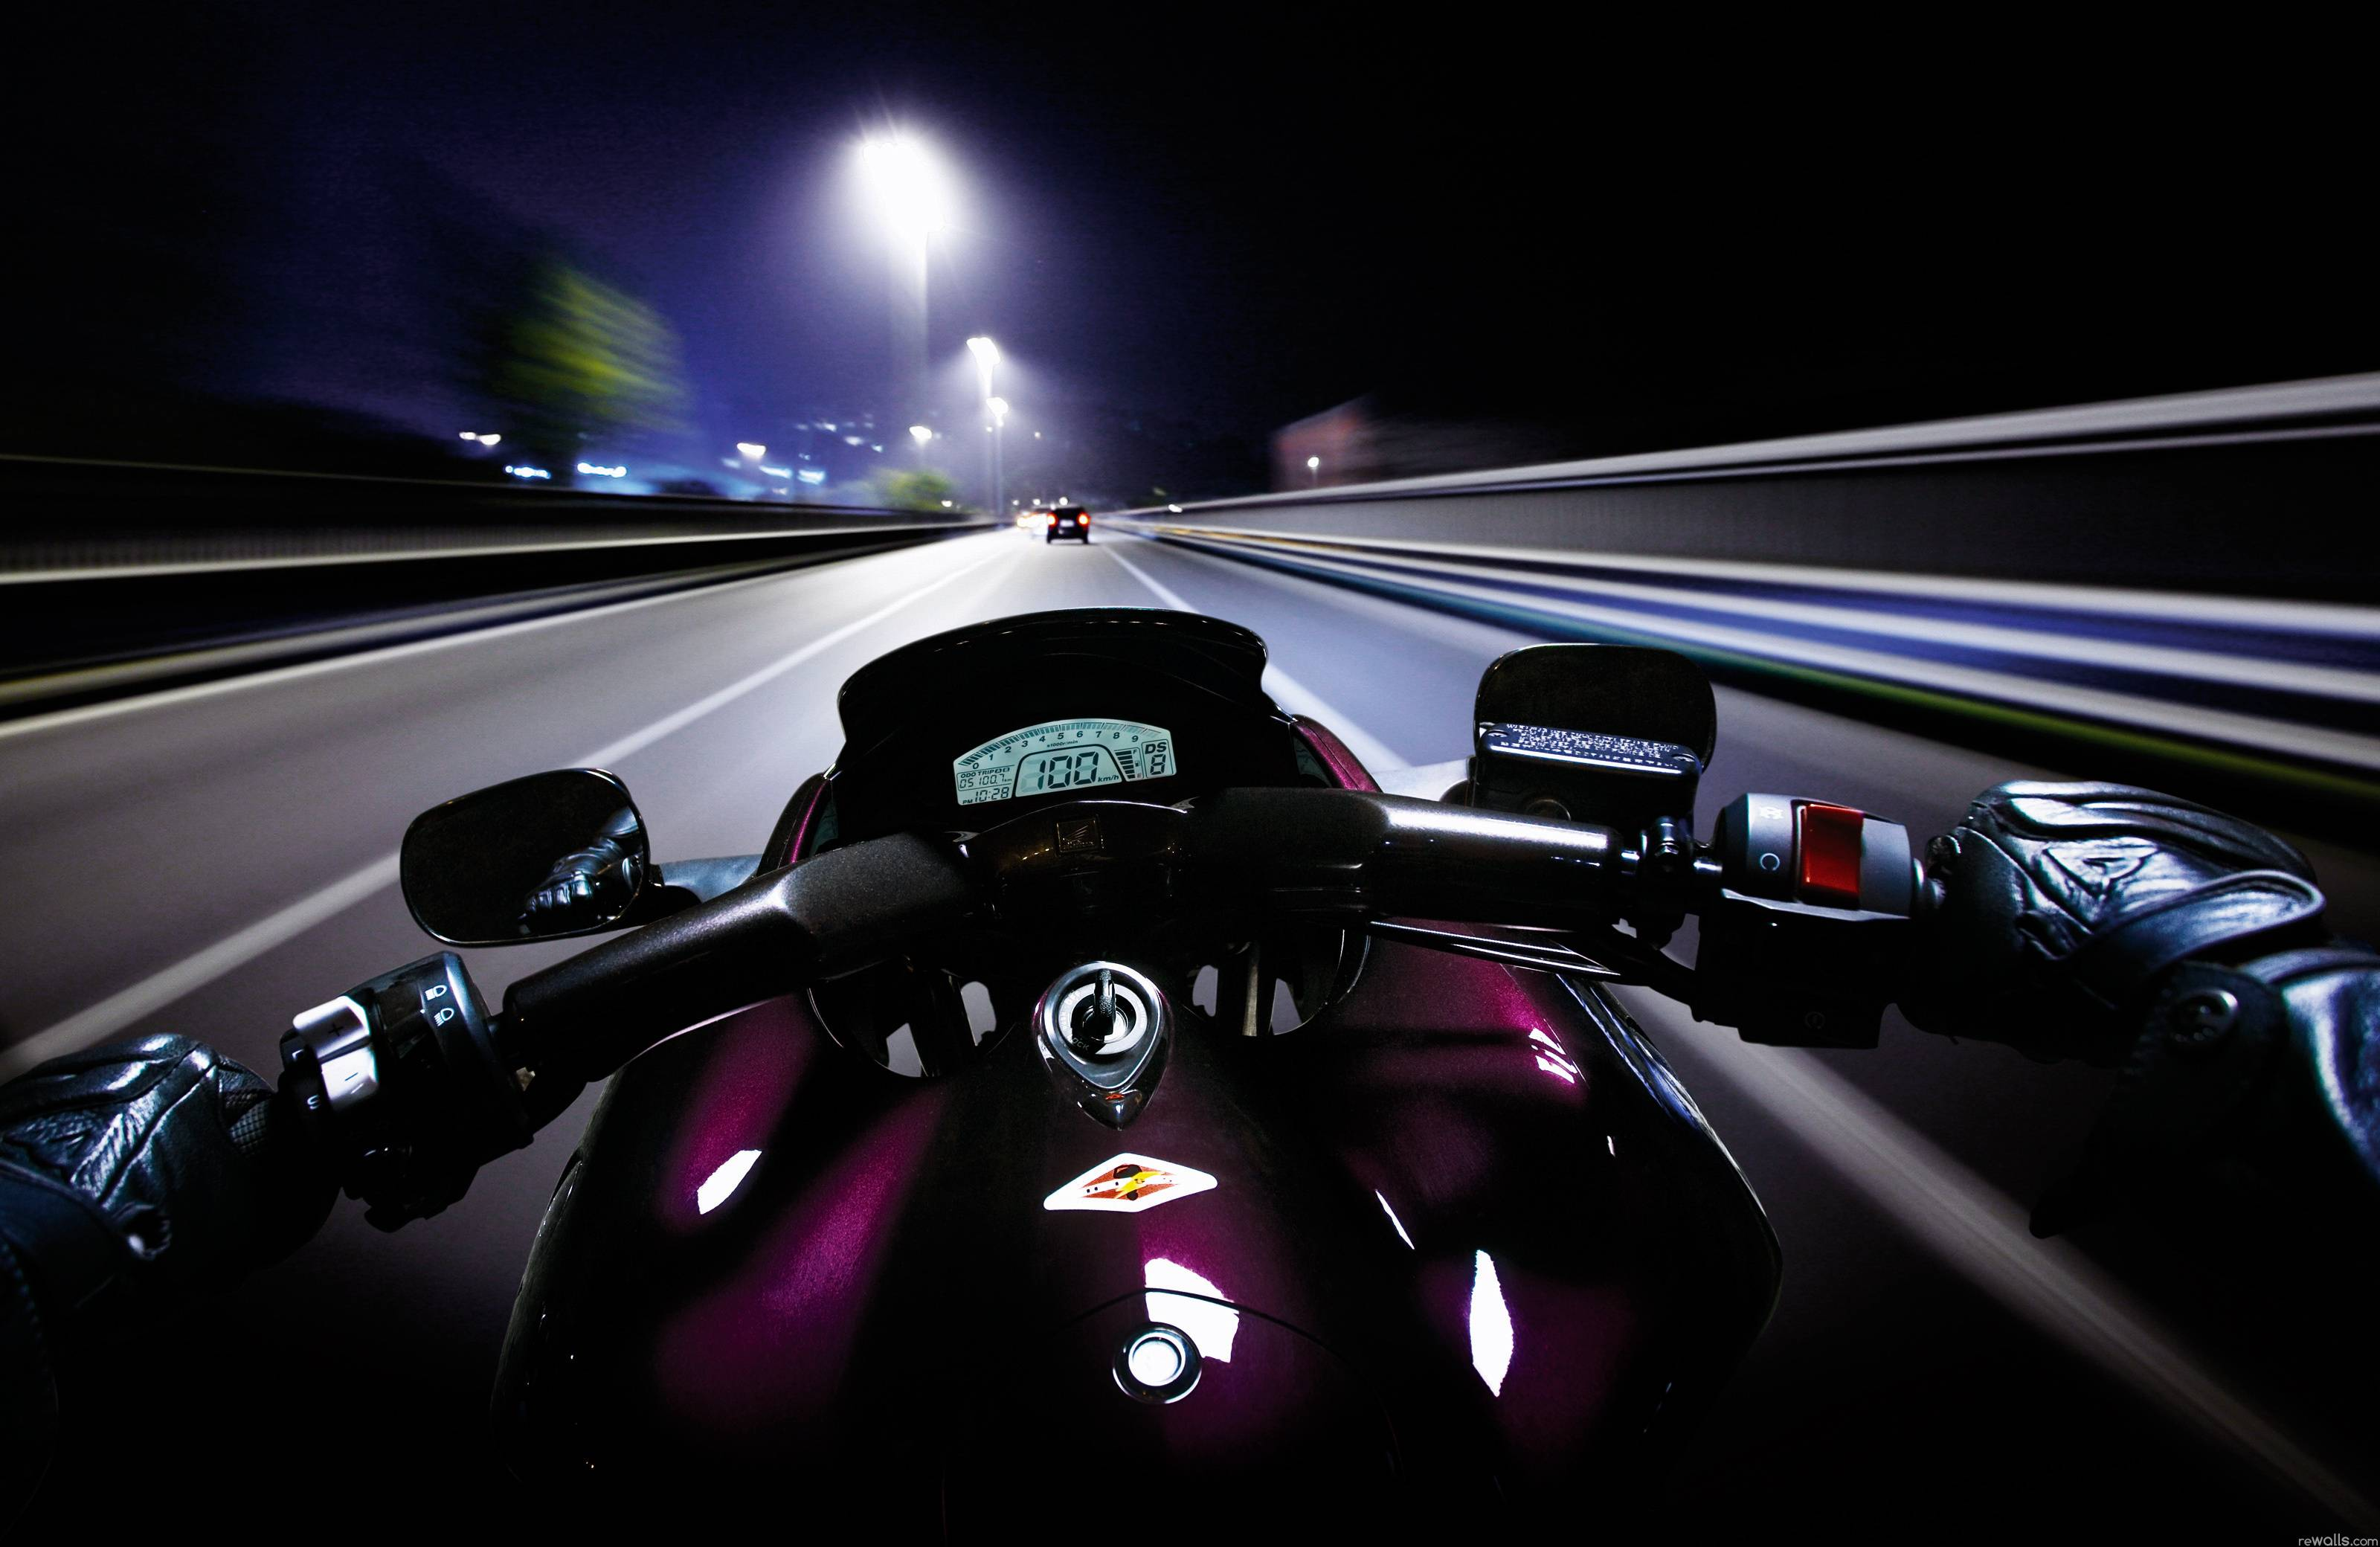 motorcycle desktop wallpaper motorcycle computer wallpapers 4128